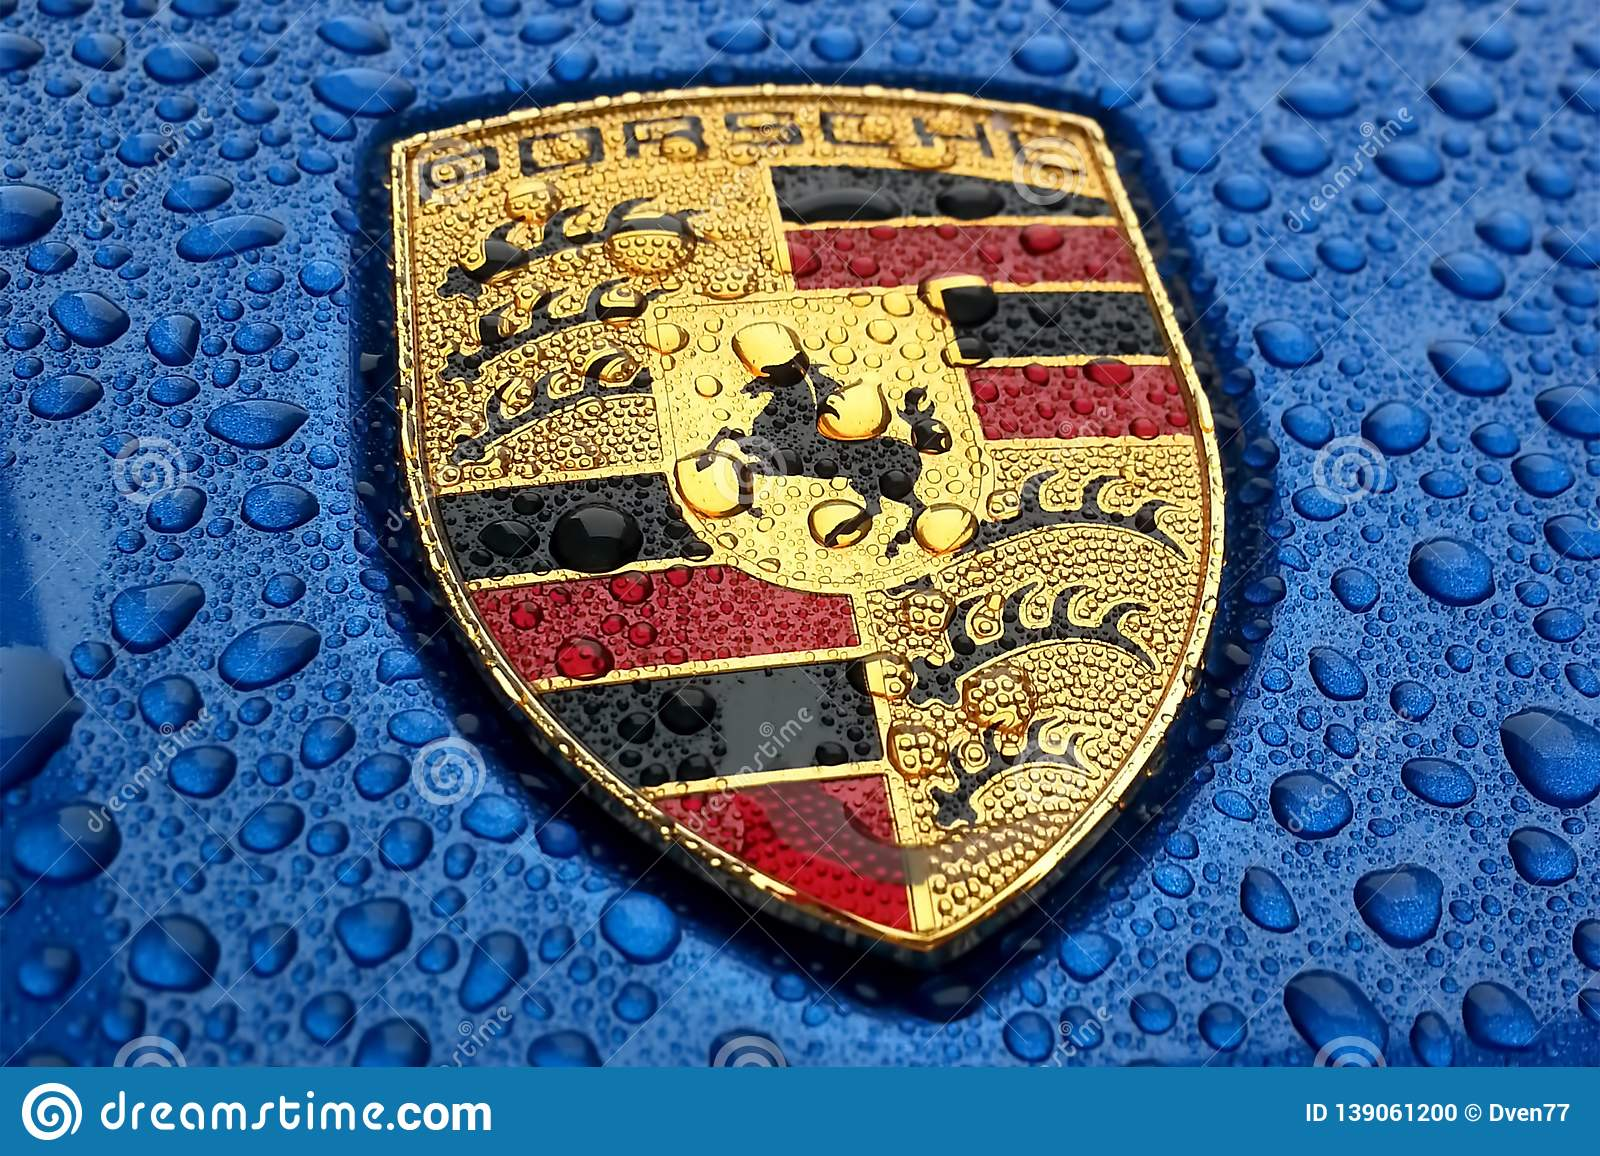 Porsche Logo Close Up On A Bright Blue Car With Rain Drops Editorial Image Image Of German Design 139061200